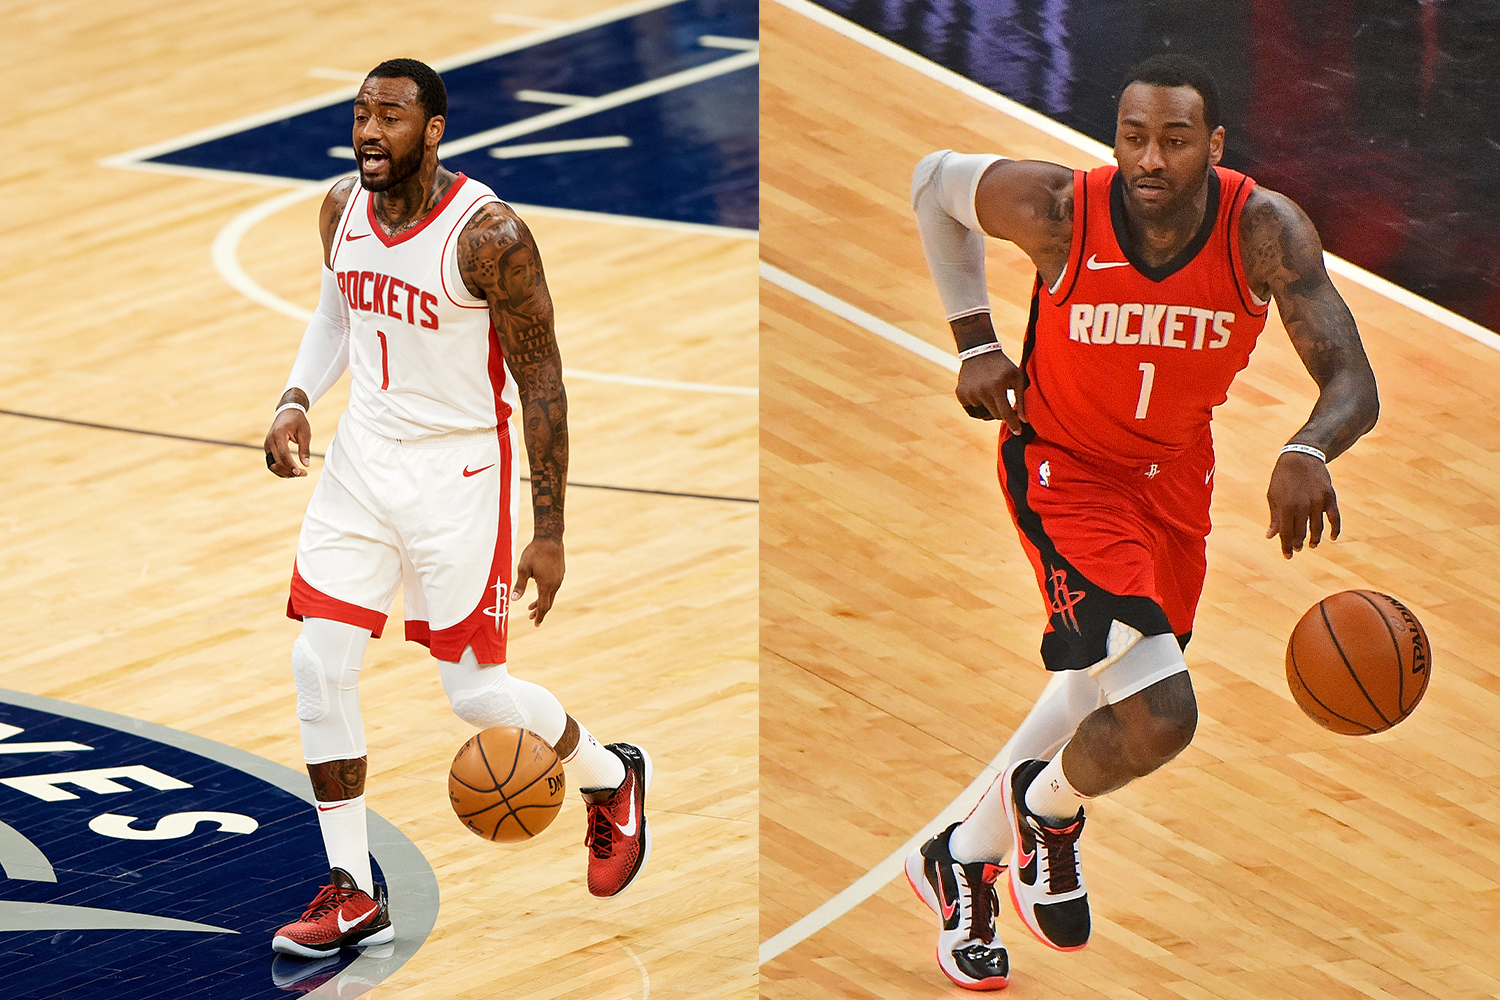 John Wall #1 of the Houston Rockets dribbles the ball against the Minnesota Timberwolves